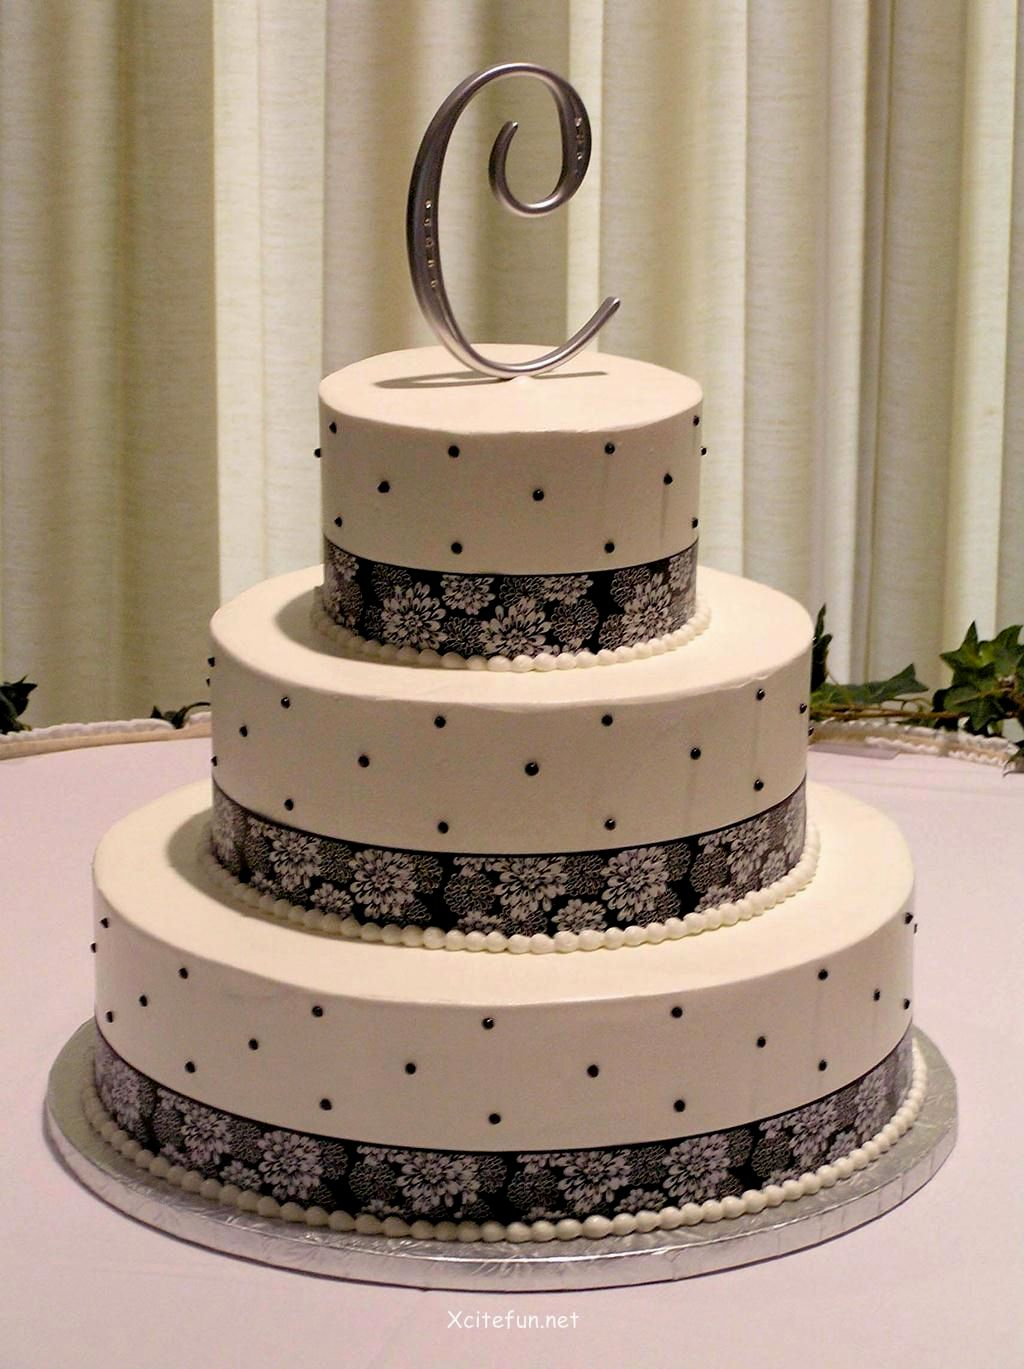 12 modern decorating cakes photo modern buttercream cake designs wedding cake decorating ideas junglespirit Gallery